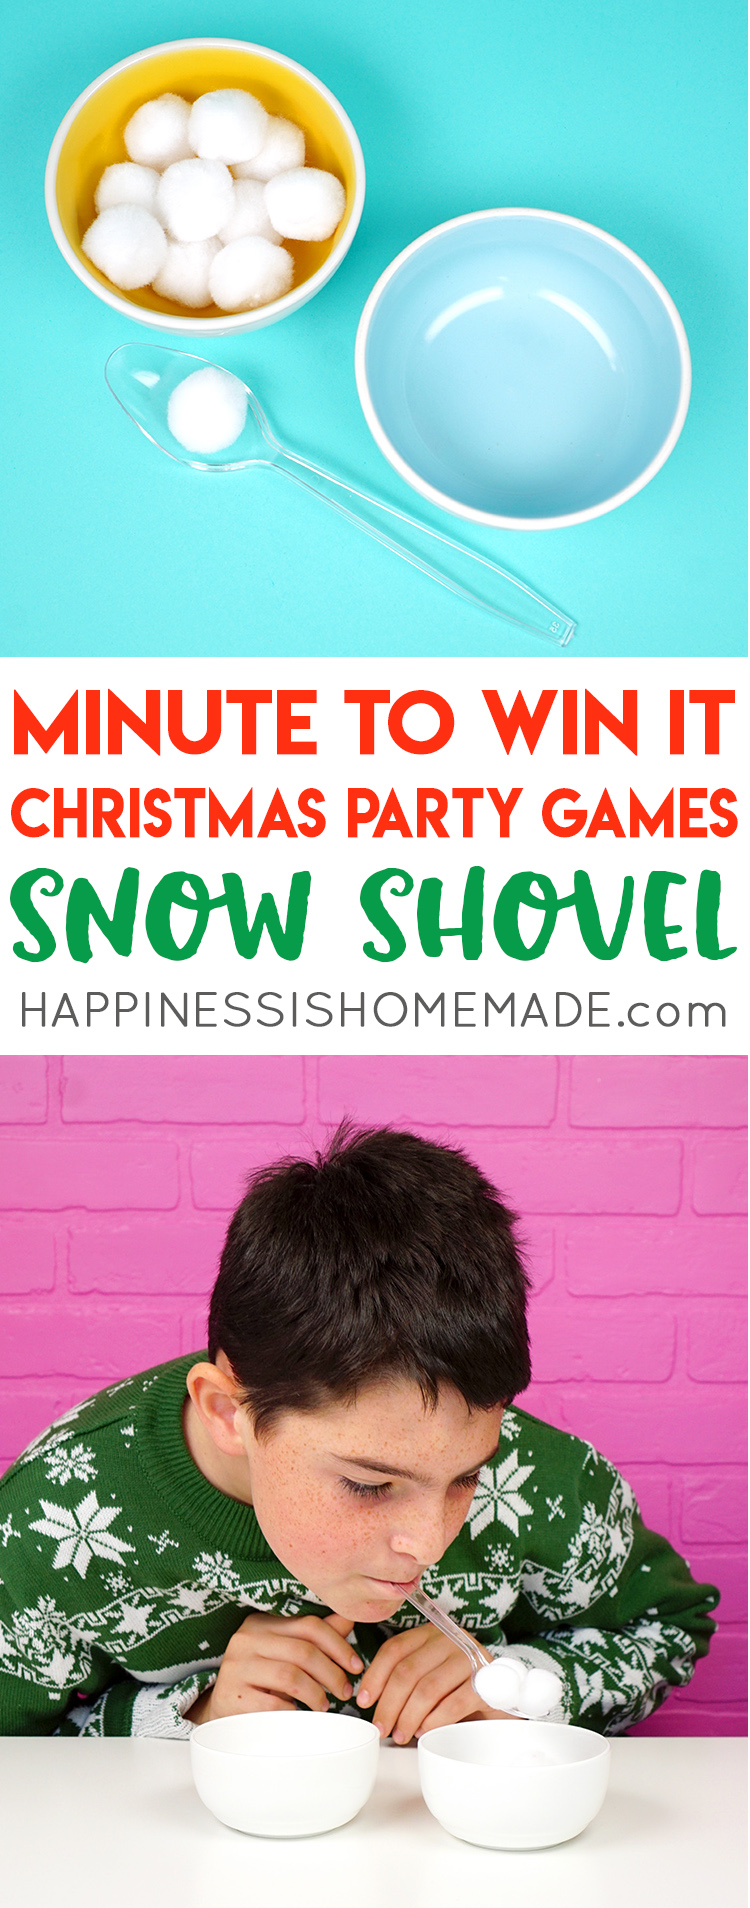 Minute To Win It Christmas.Minute To Win It Christmas Games For All Ages Happiness Is